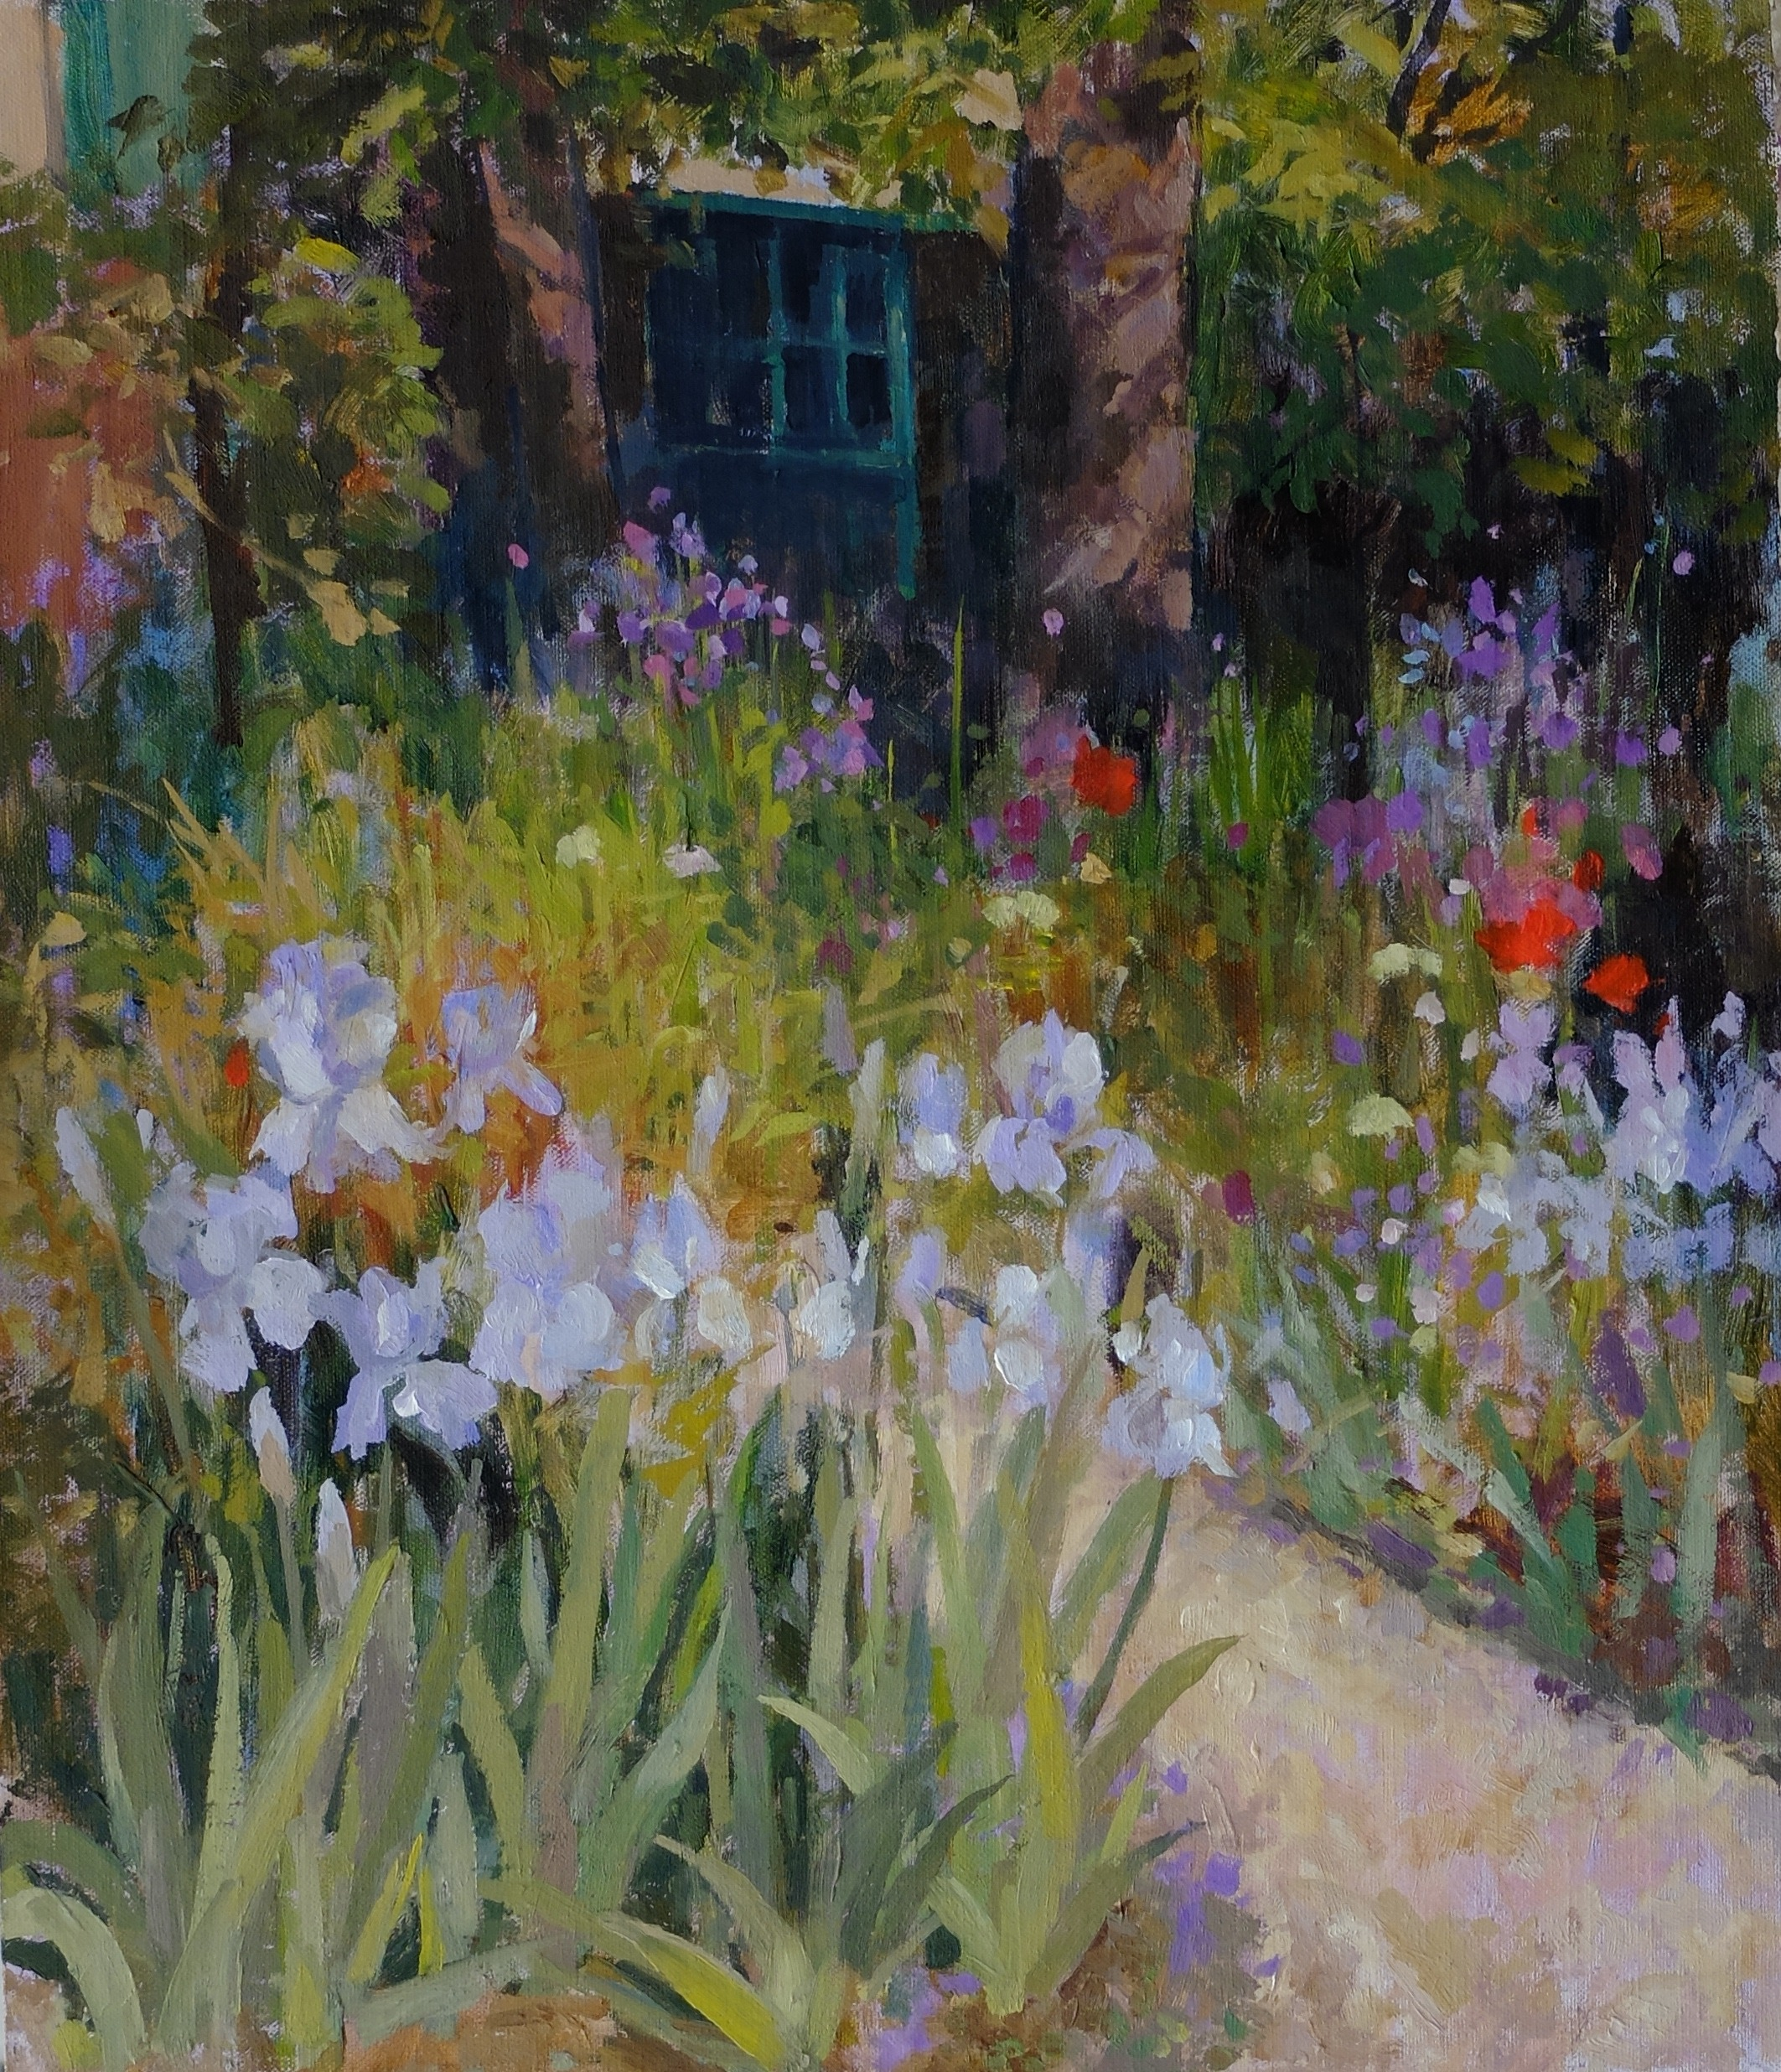 Spring Exhibition of Gallery Artists 2020